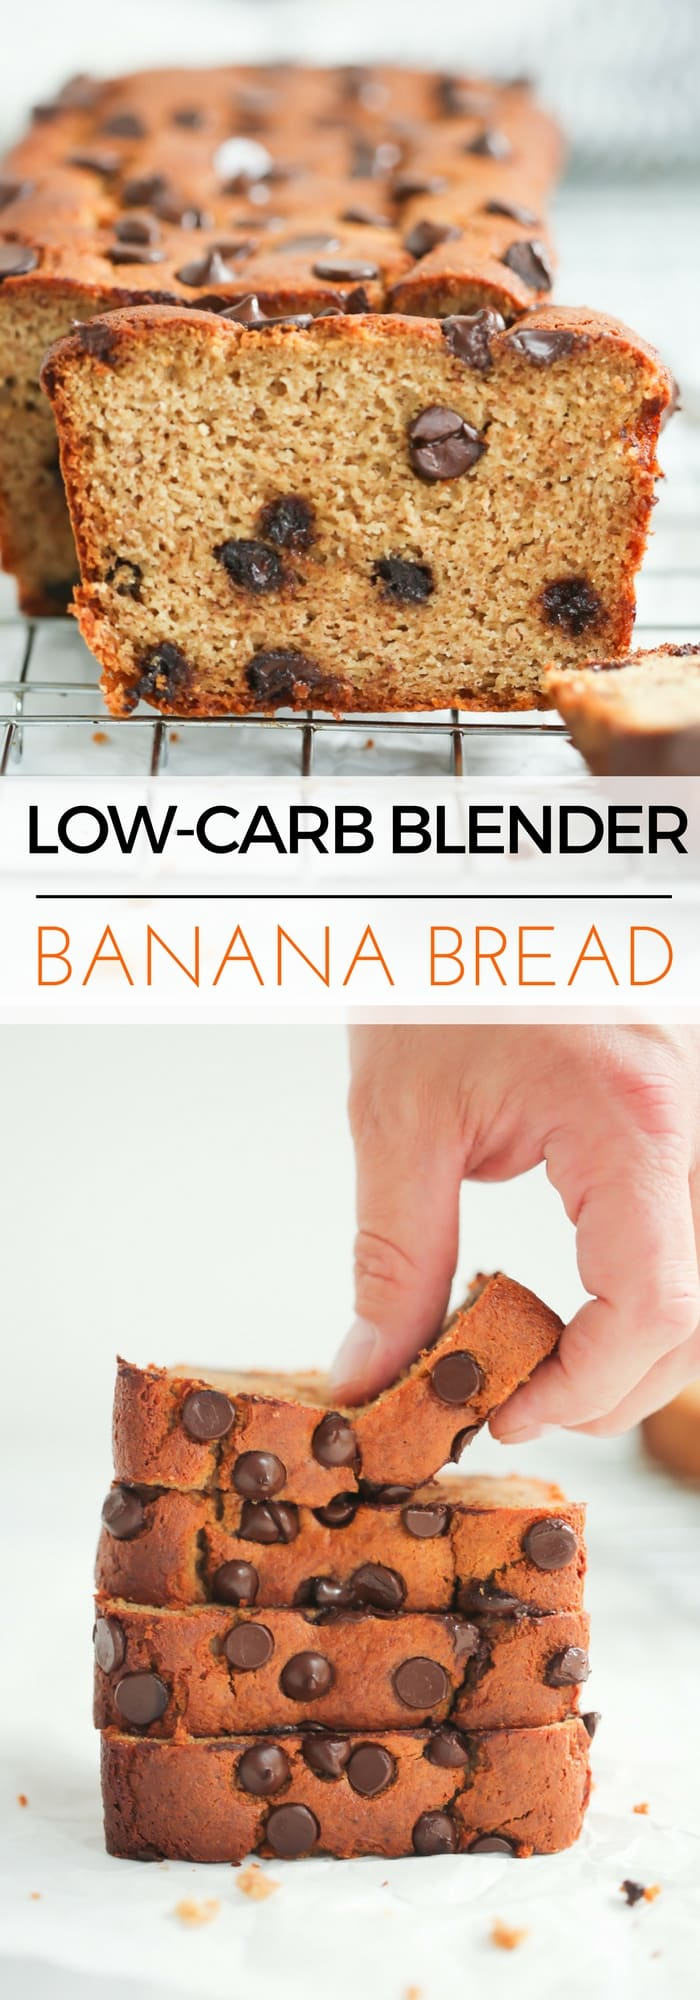 Low-carb blender banana bread - This Low-carb Blender Banana Bread is ultra-easy to make. Simply toss all of the ingredients into the blender, pour into the pan and bake it for 40 mins! Done! And It's gluten-free too!